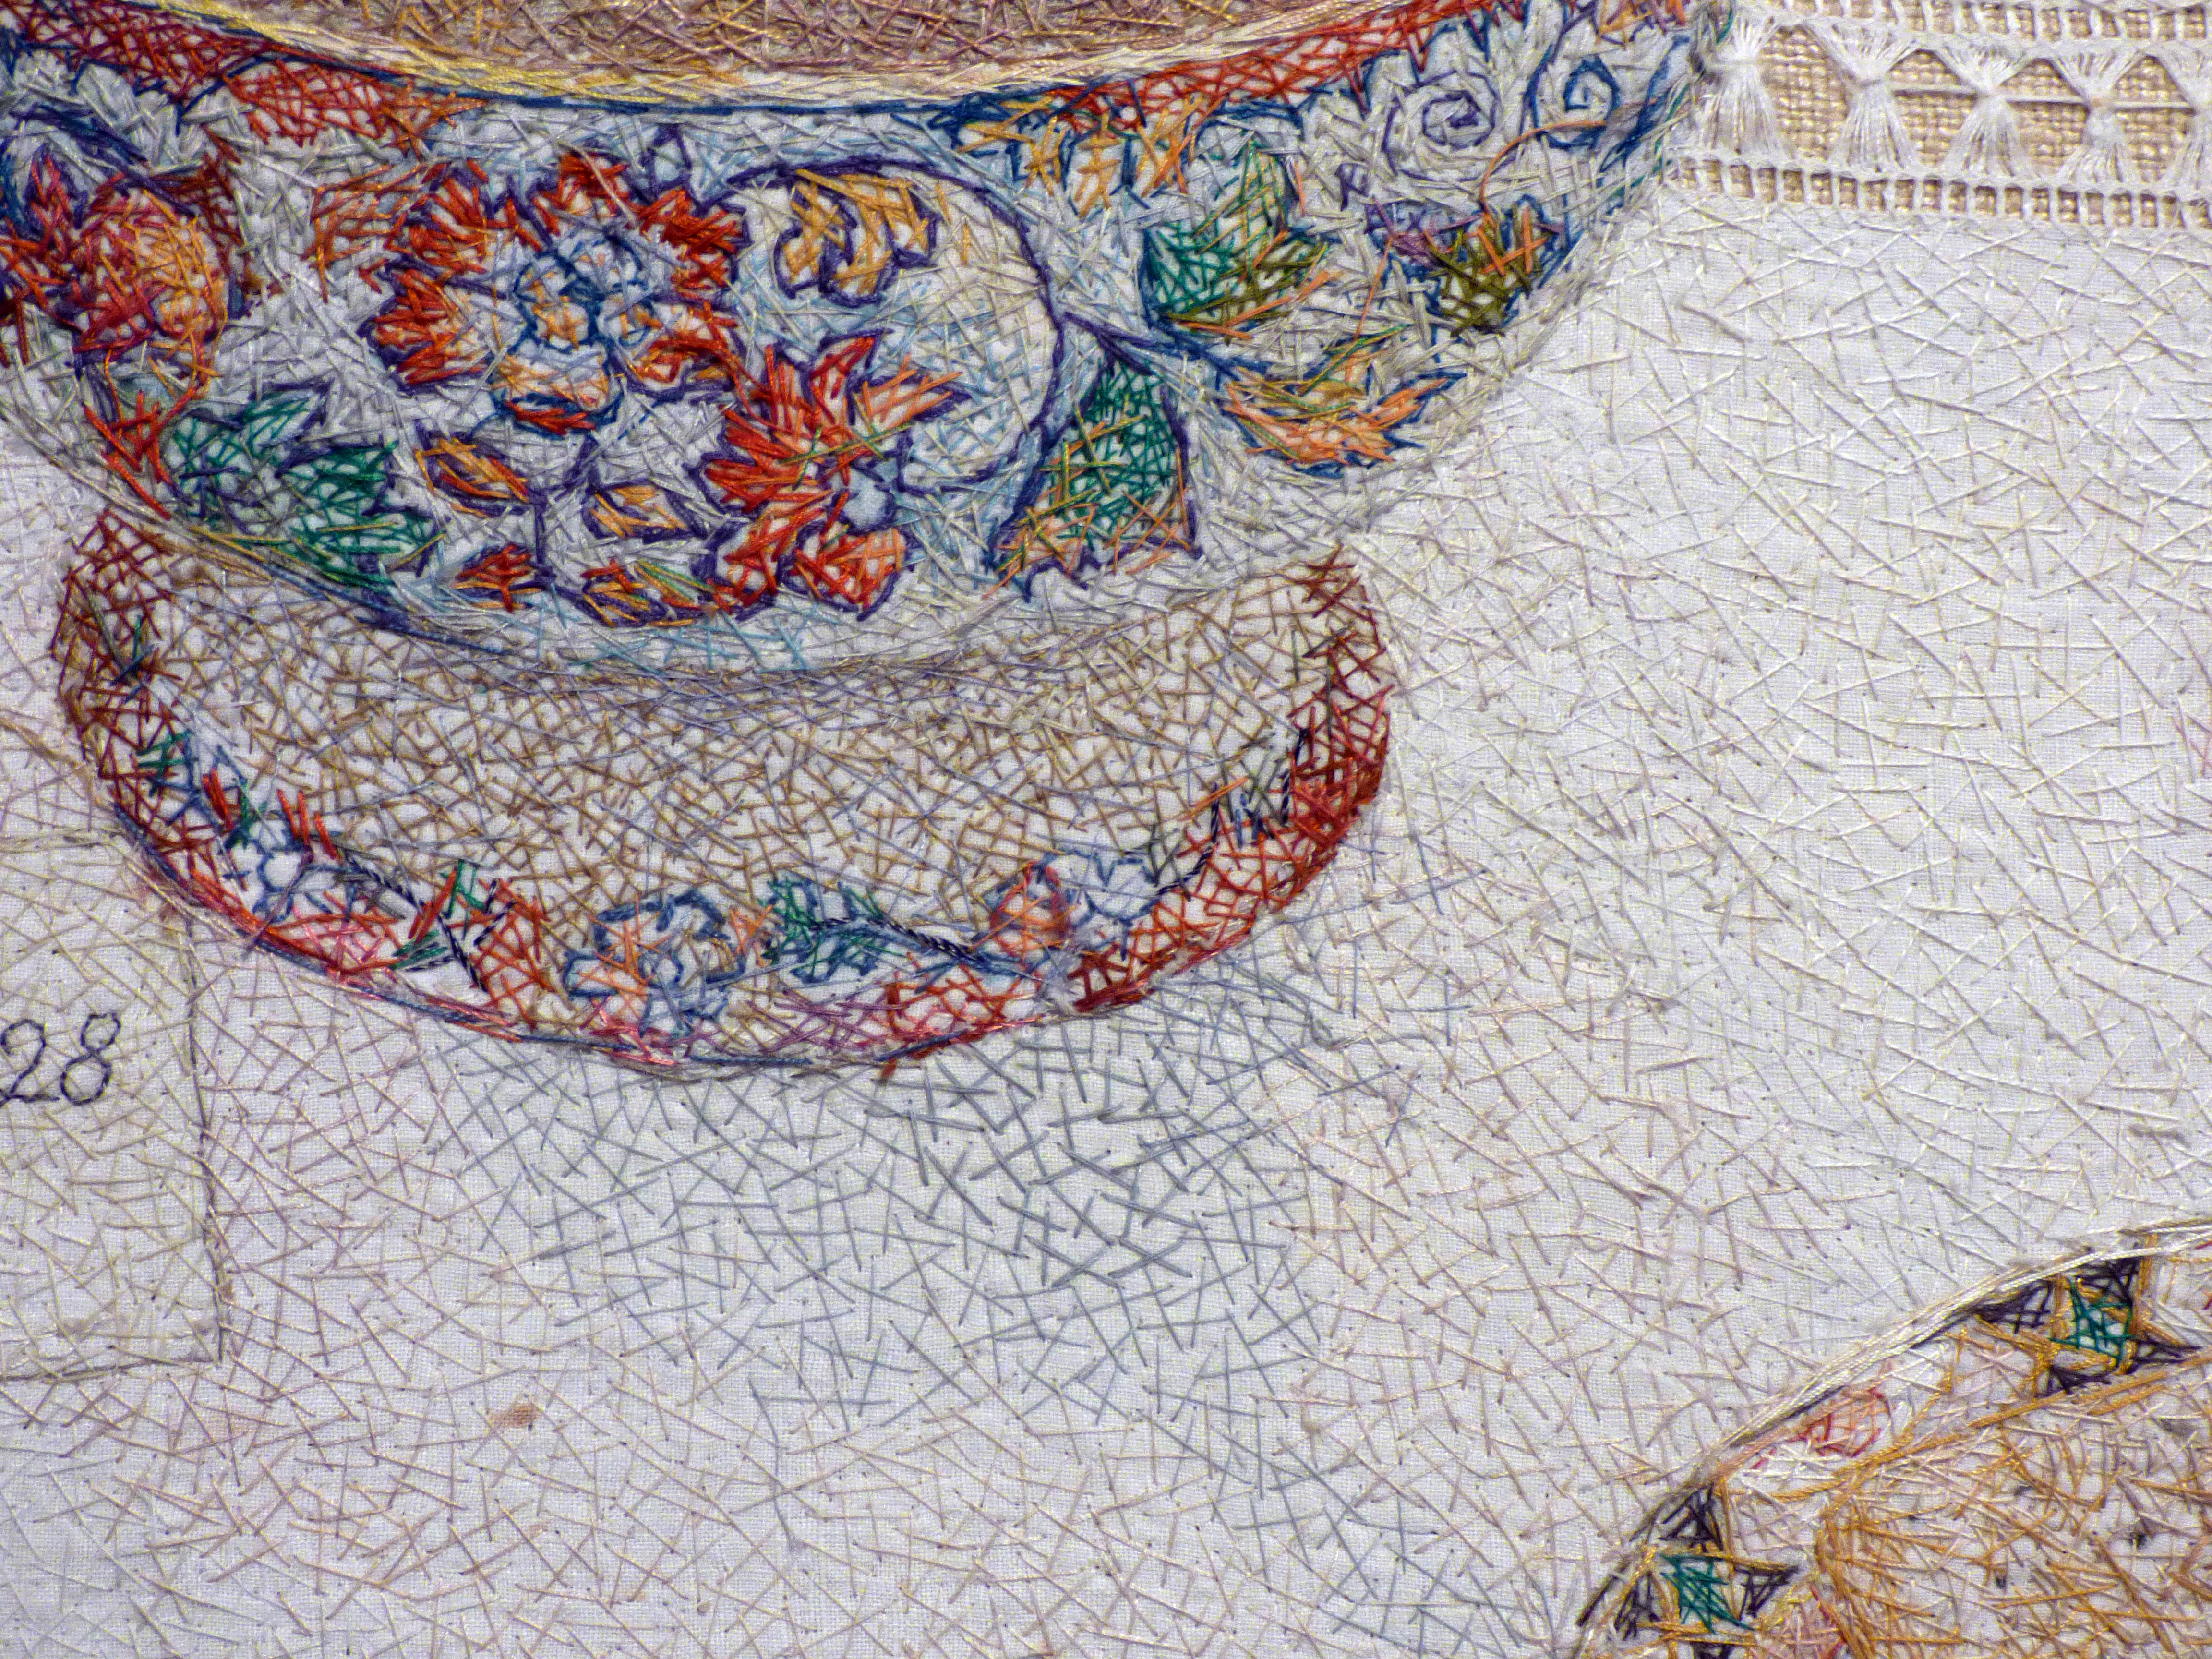 (detail) A CUMBRIAN BIRTHDAY by Audrey Walker, stitched textile, 1997/8